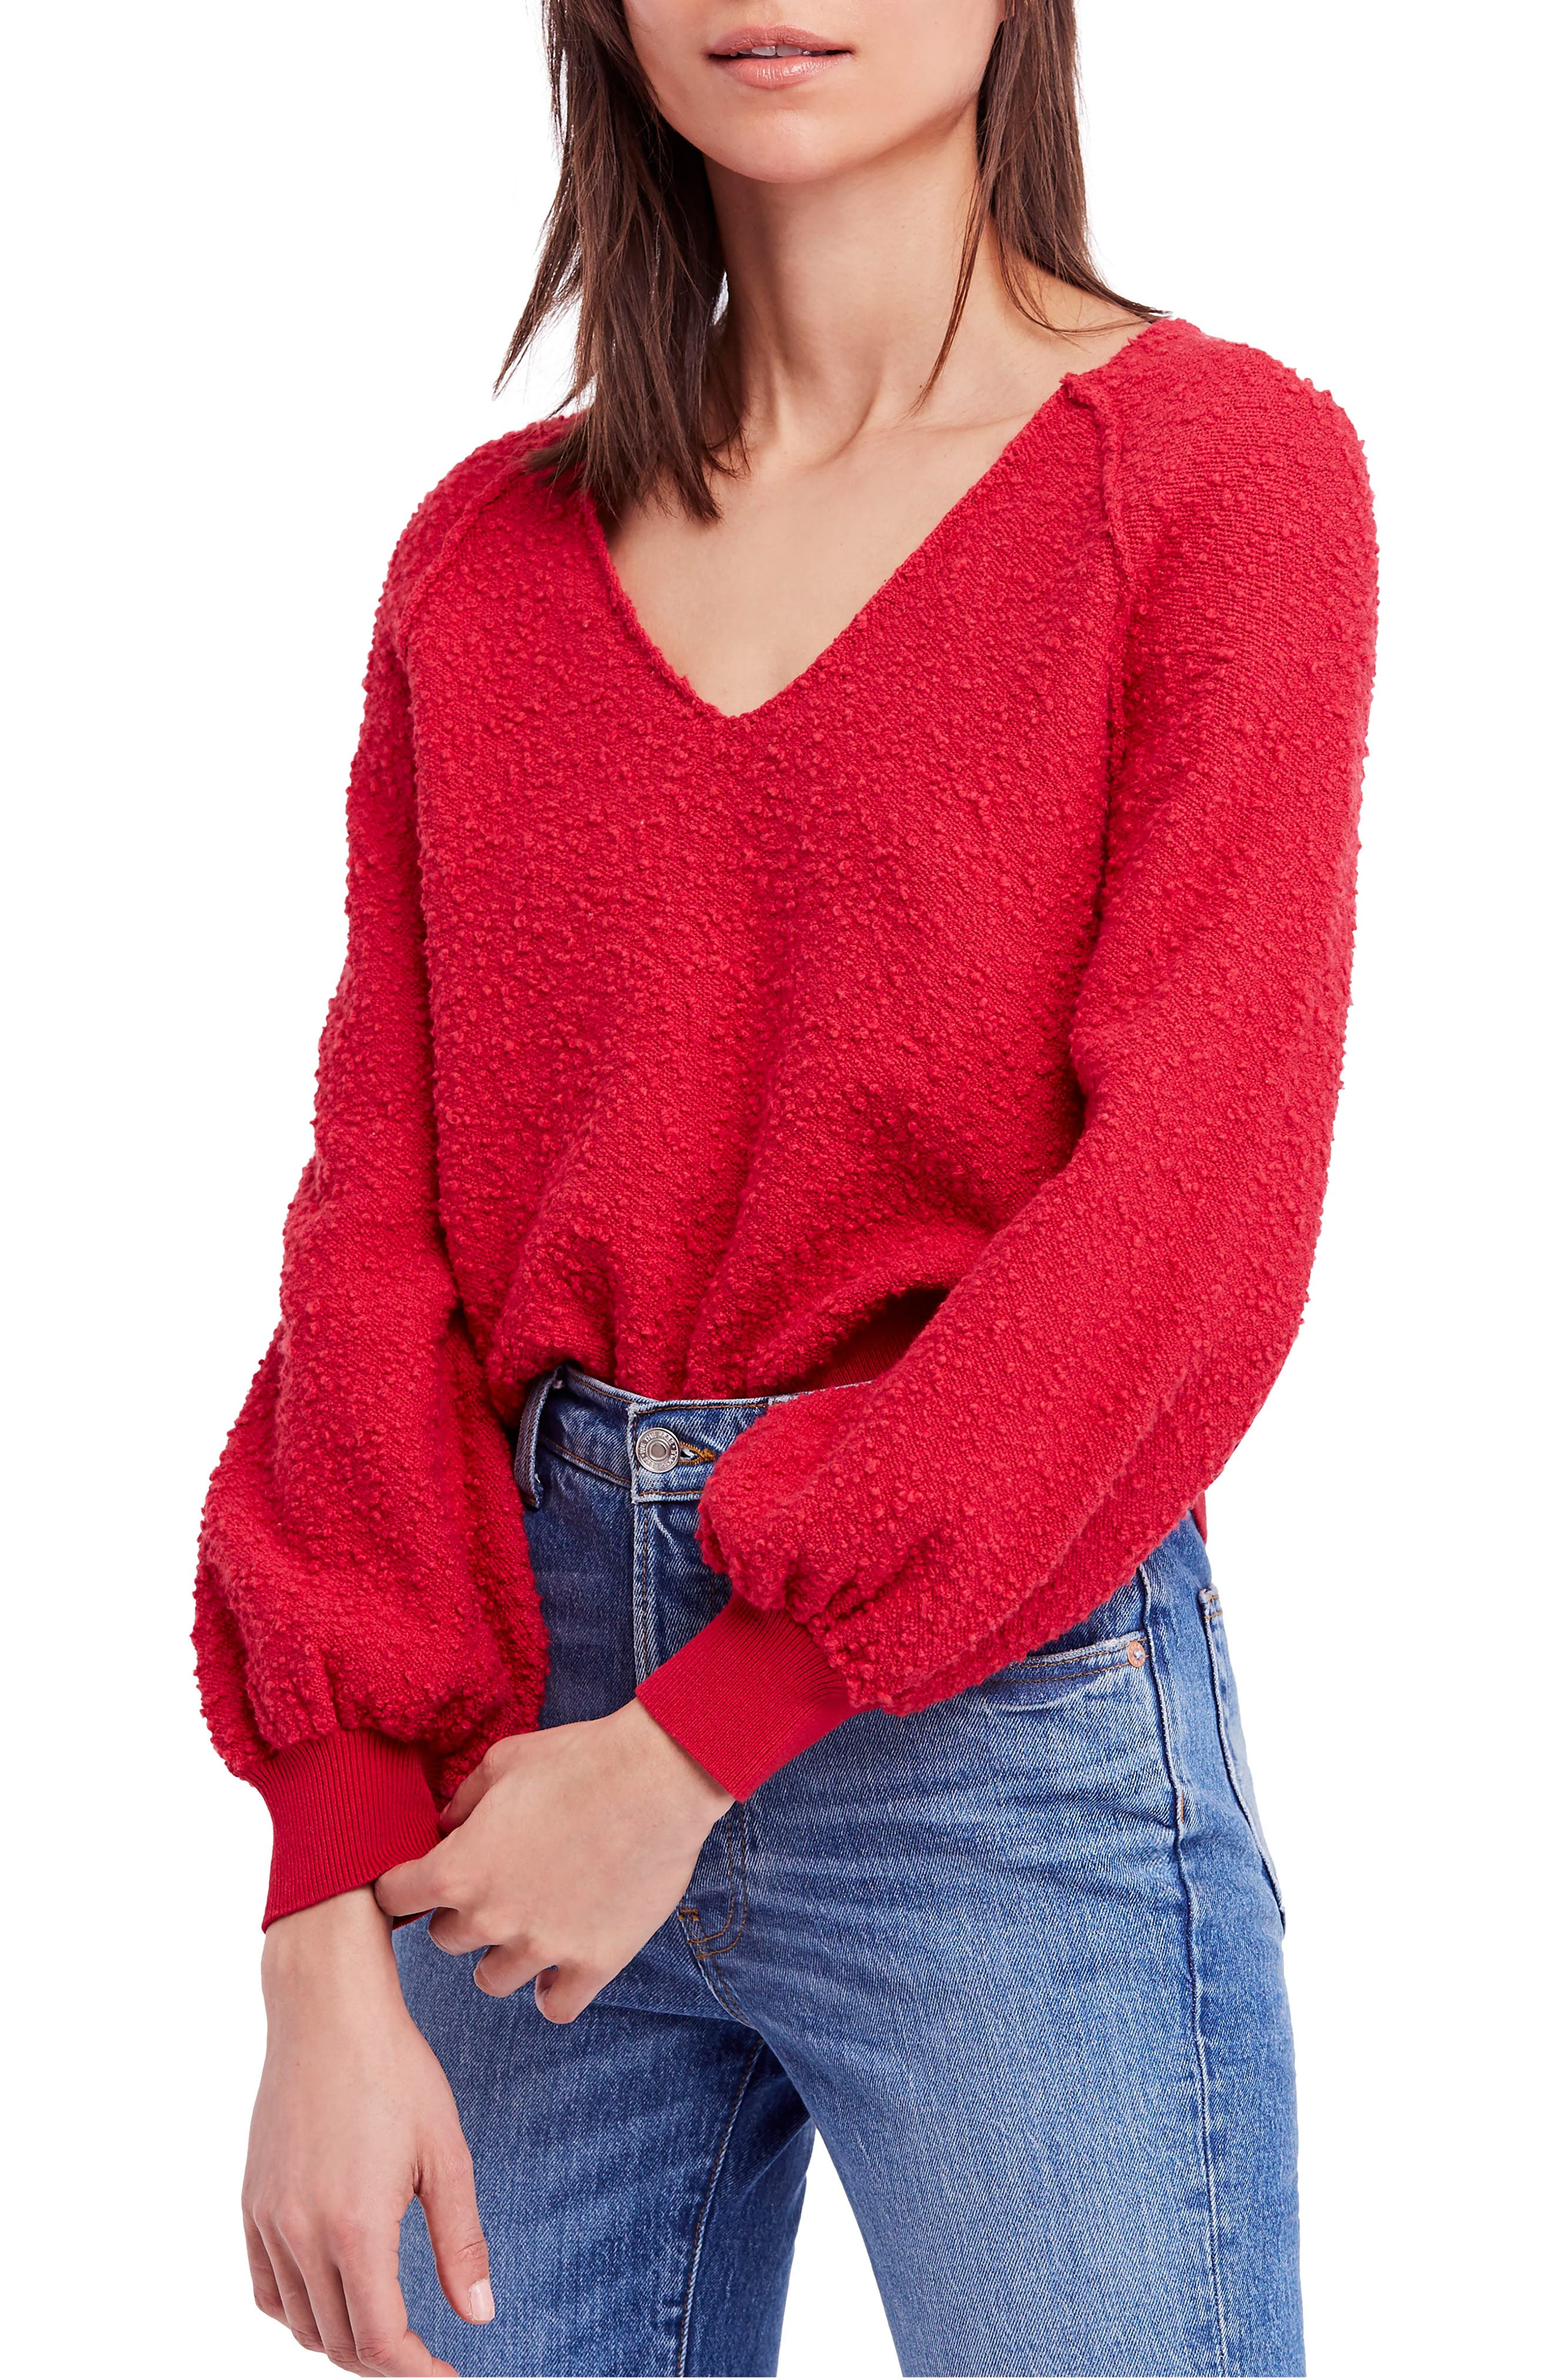 Found My Friend Sweater by Free People